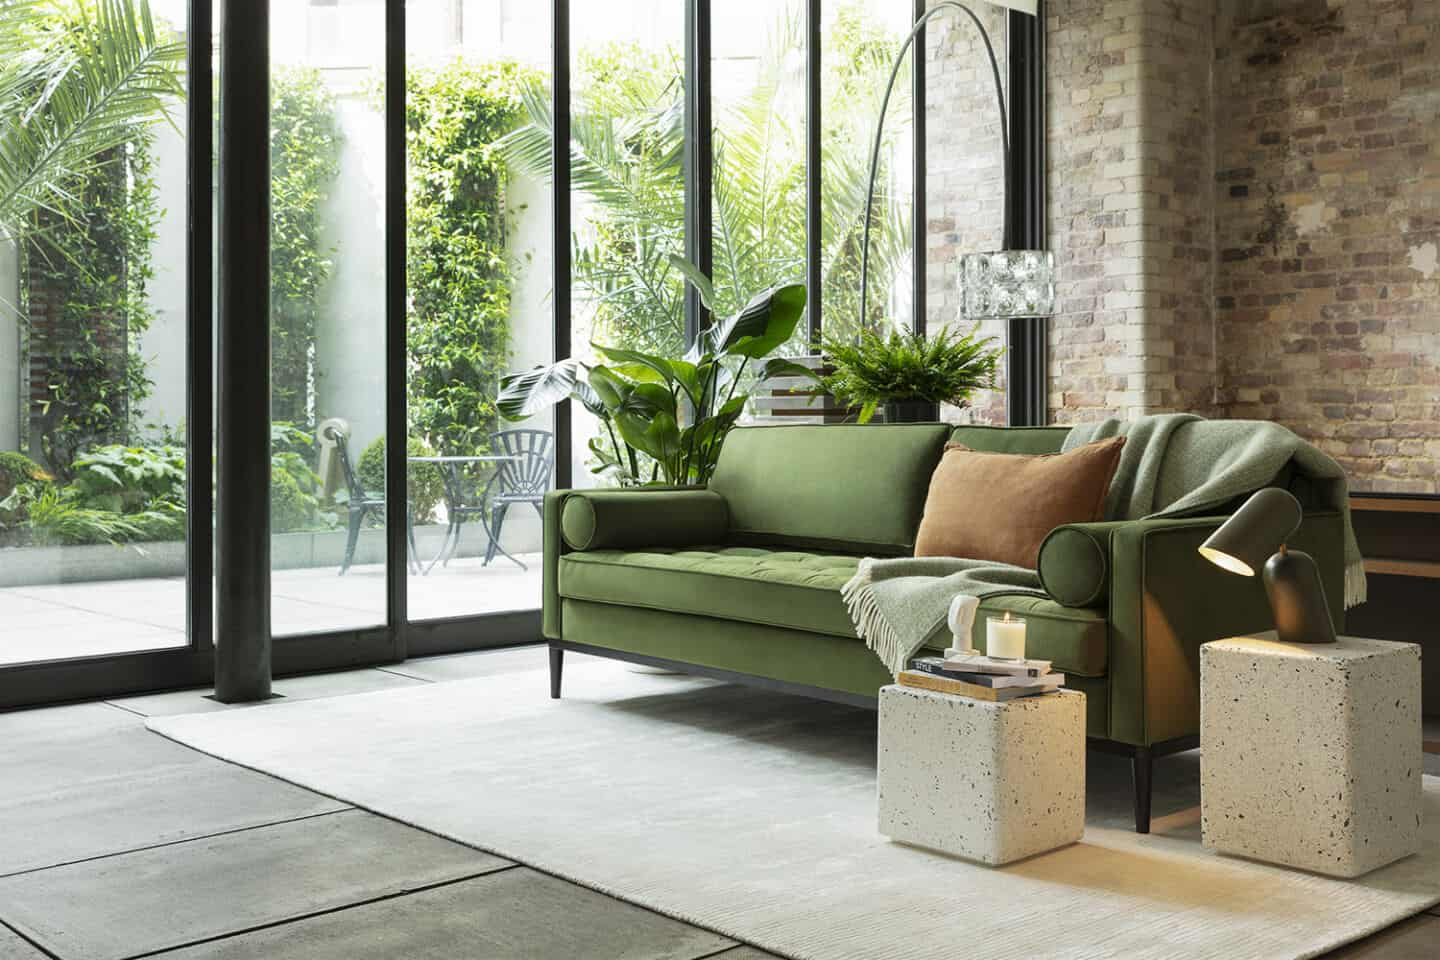 A green sofa from Swyft Home on a grey rug positioned next to a window with lots of plants outside and with a brick wall behind